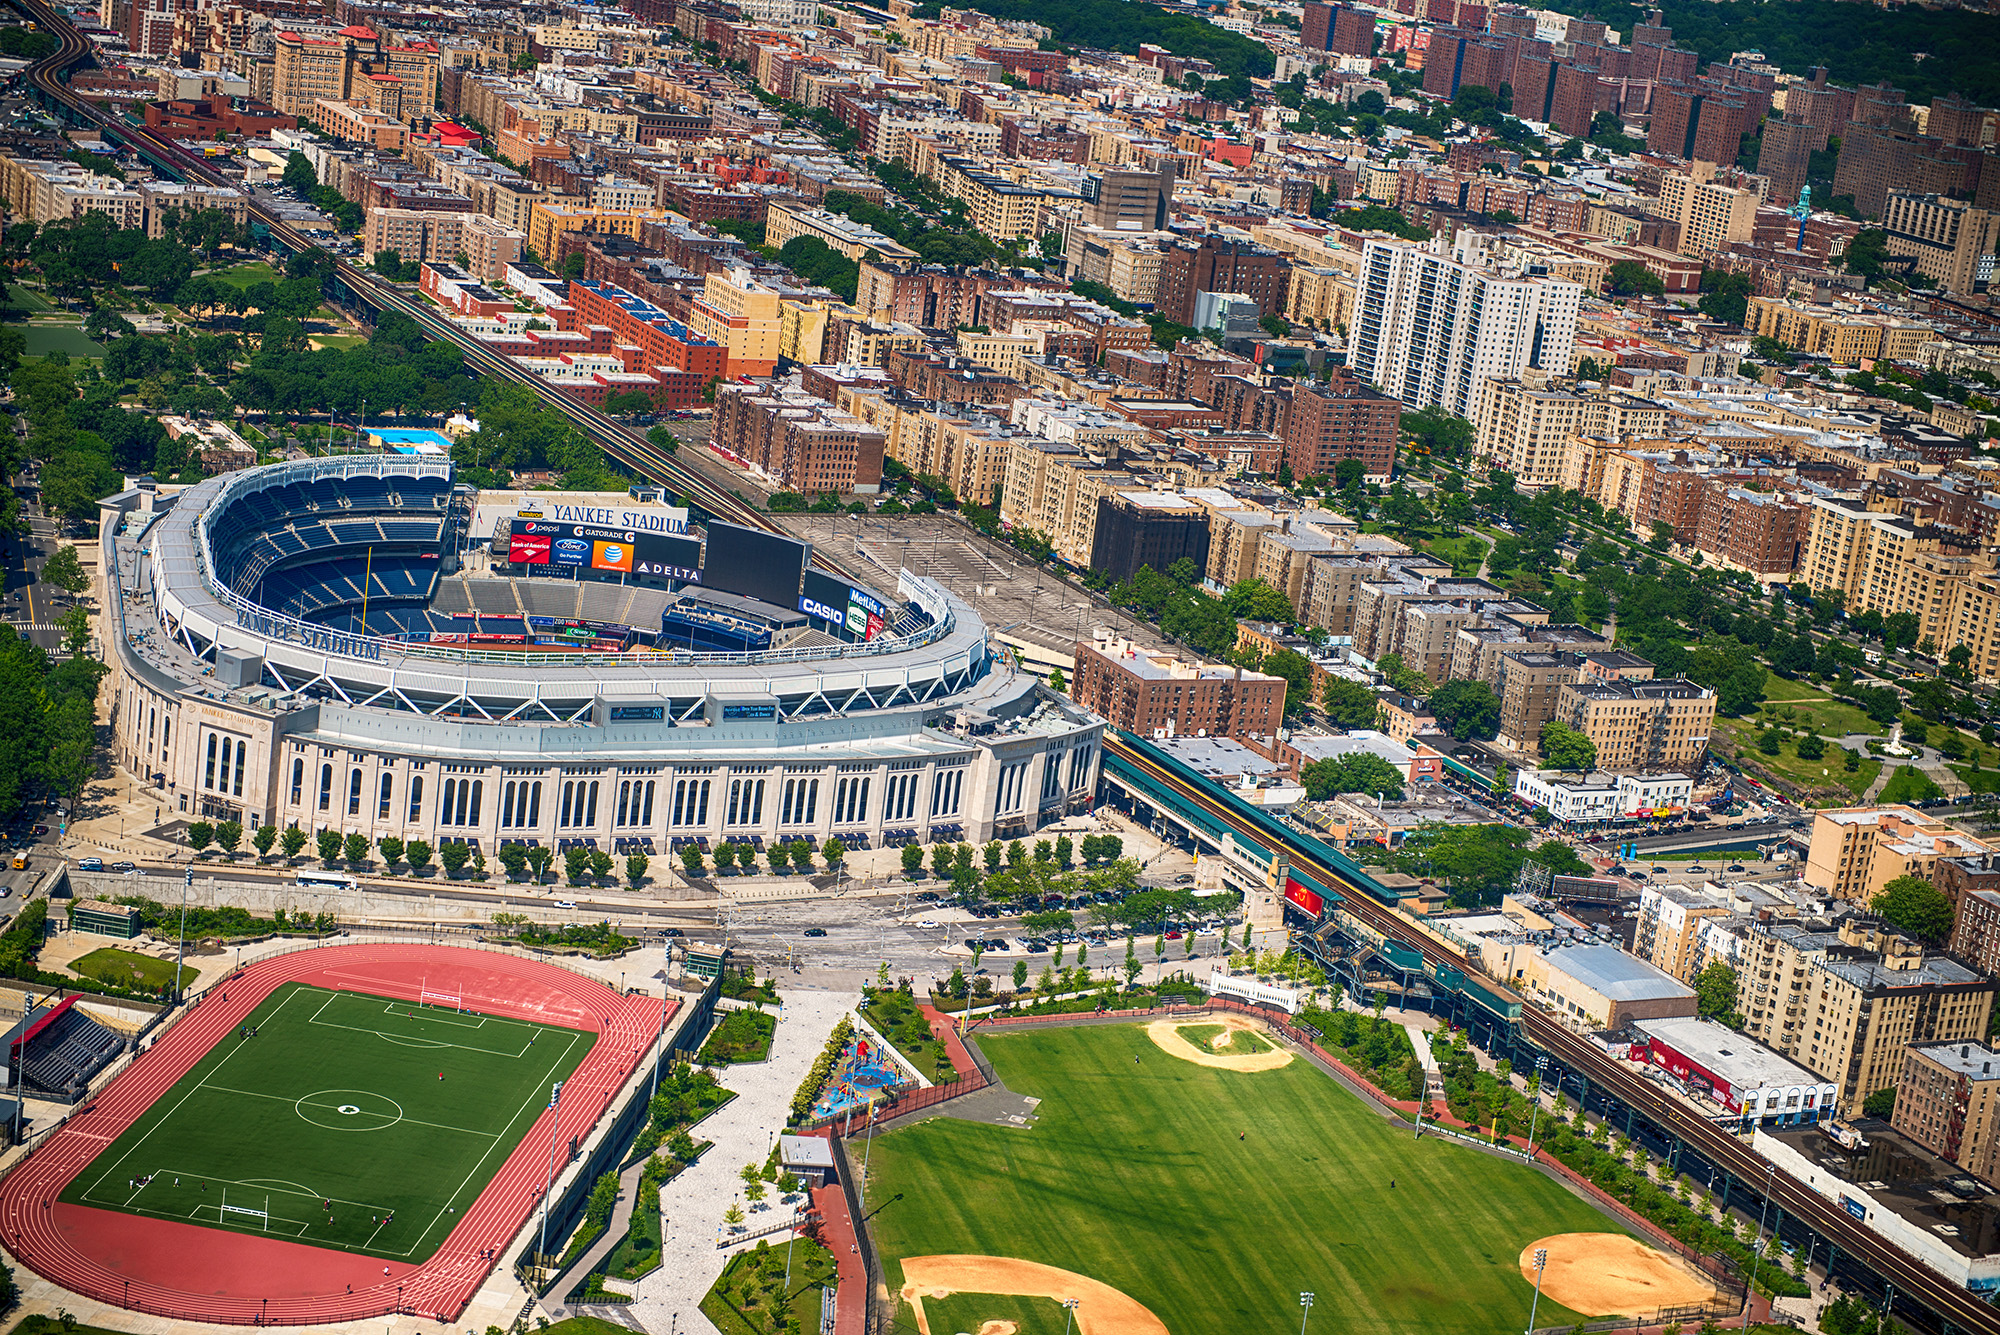 Citysights ny blog get in the loop - Yankee stadium images ...